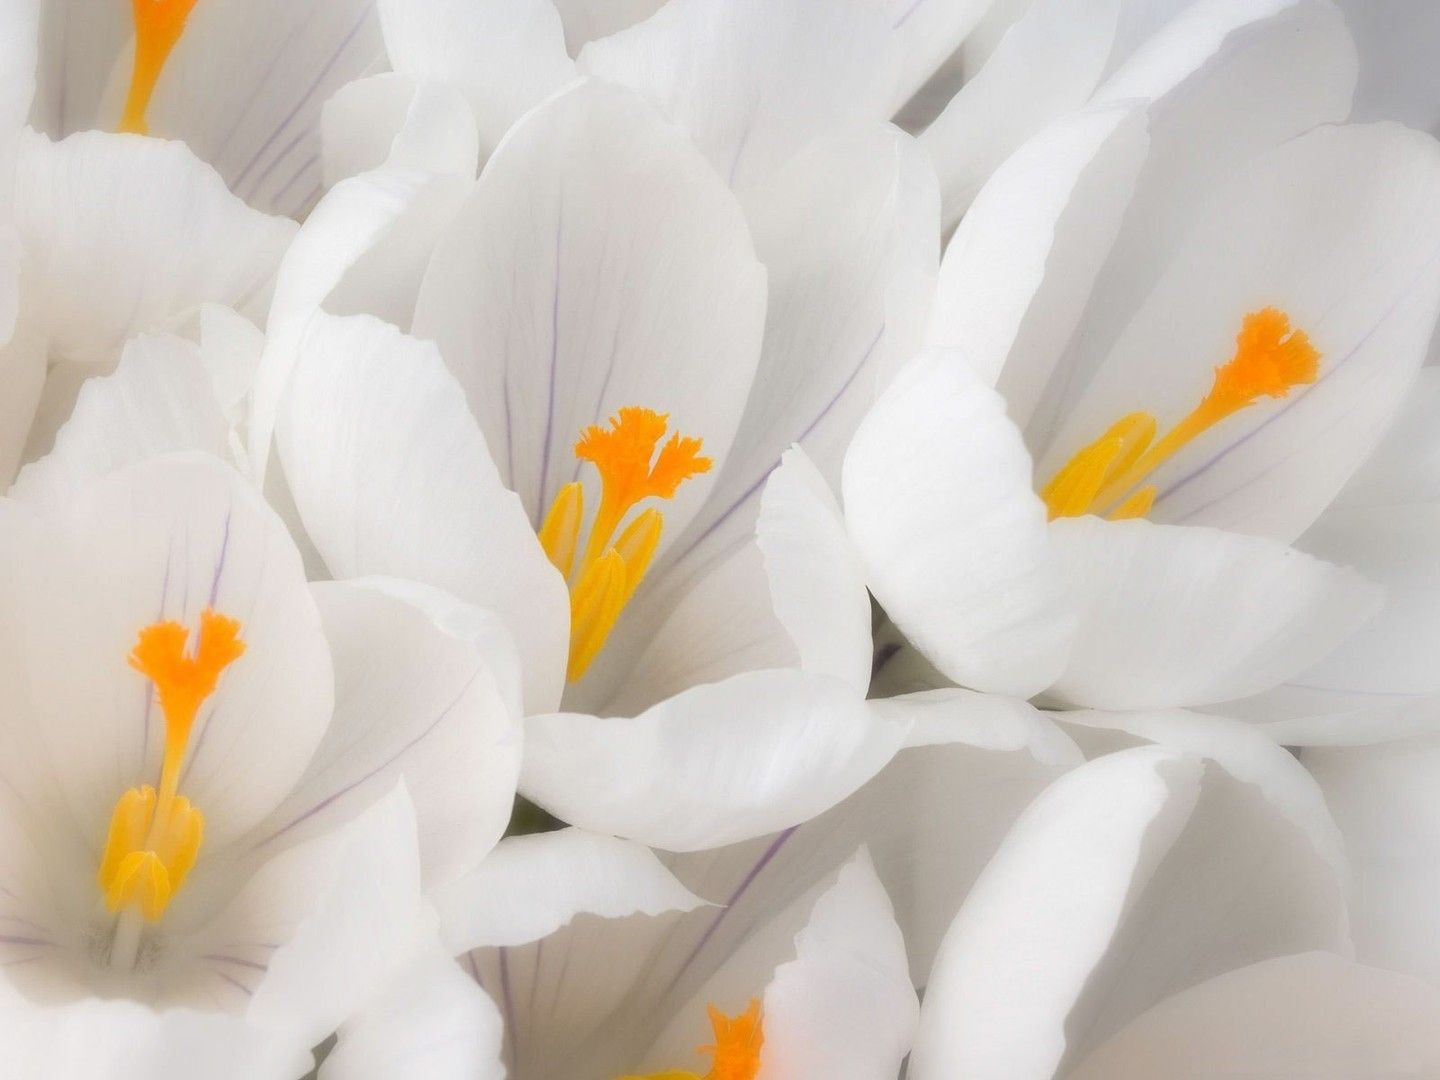 White Flowers wallpaper x